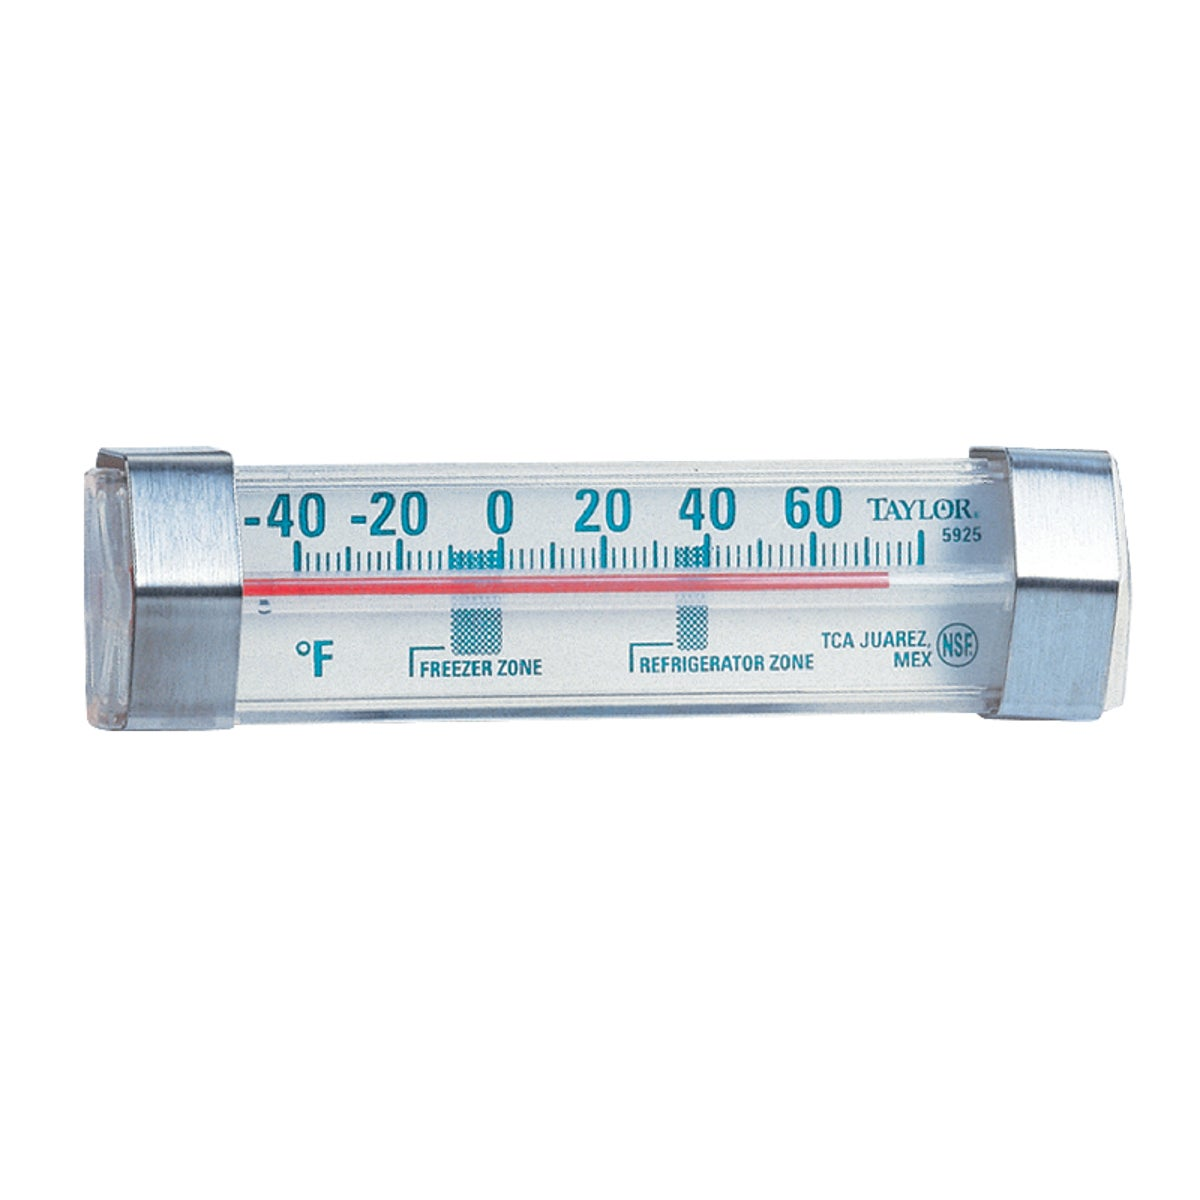 Taylor Precision REFRIG/FRZR THERMOMETER 5925N